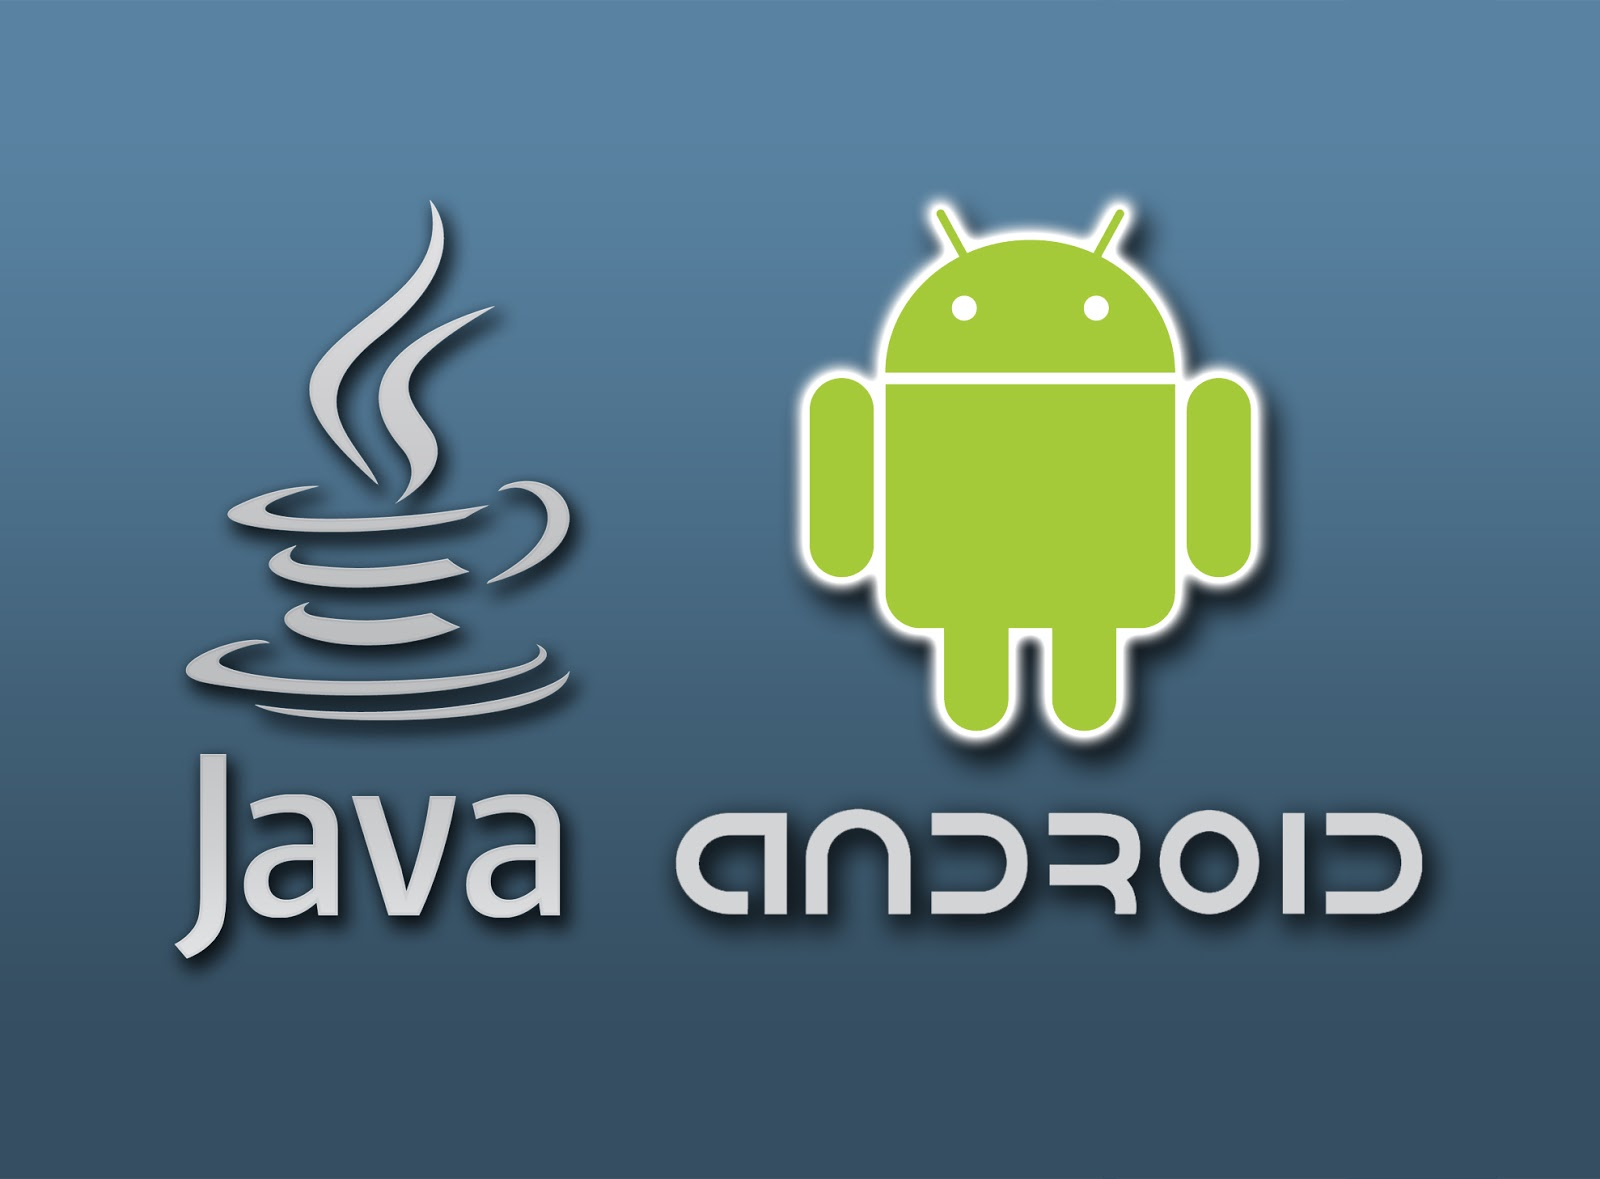 Netmite J2ME MIDP runner. - Android Lounge